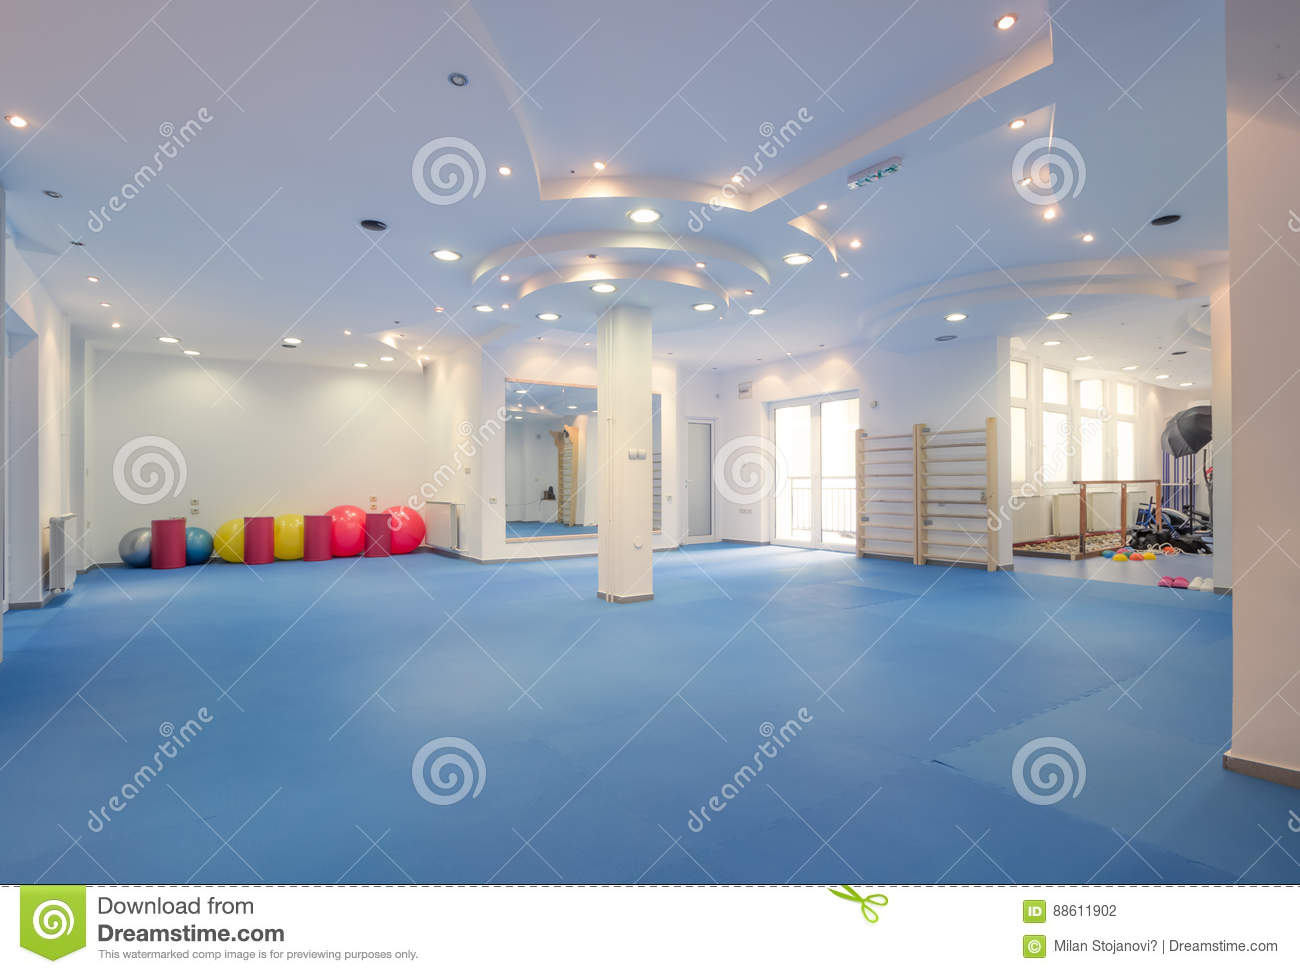 Interior large room no people fitness gym physical